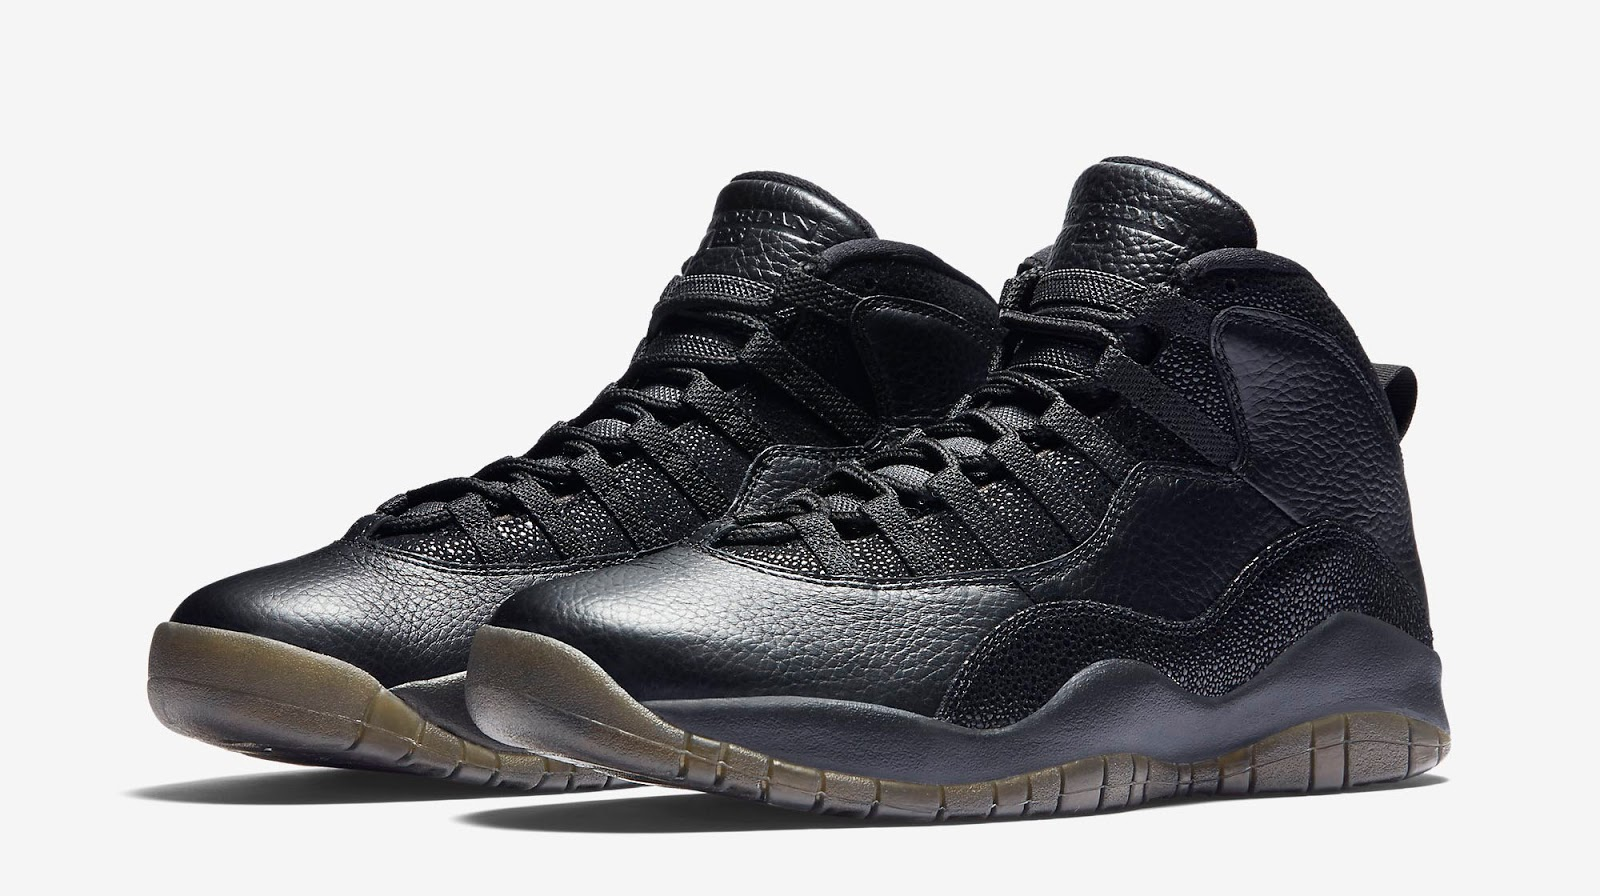 65f4a0ece941 ajordanxi Your  1 Source For Sneaker Release Dates  Air Jordan 10 ...